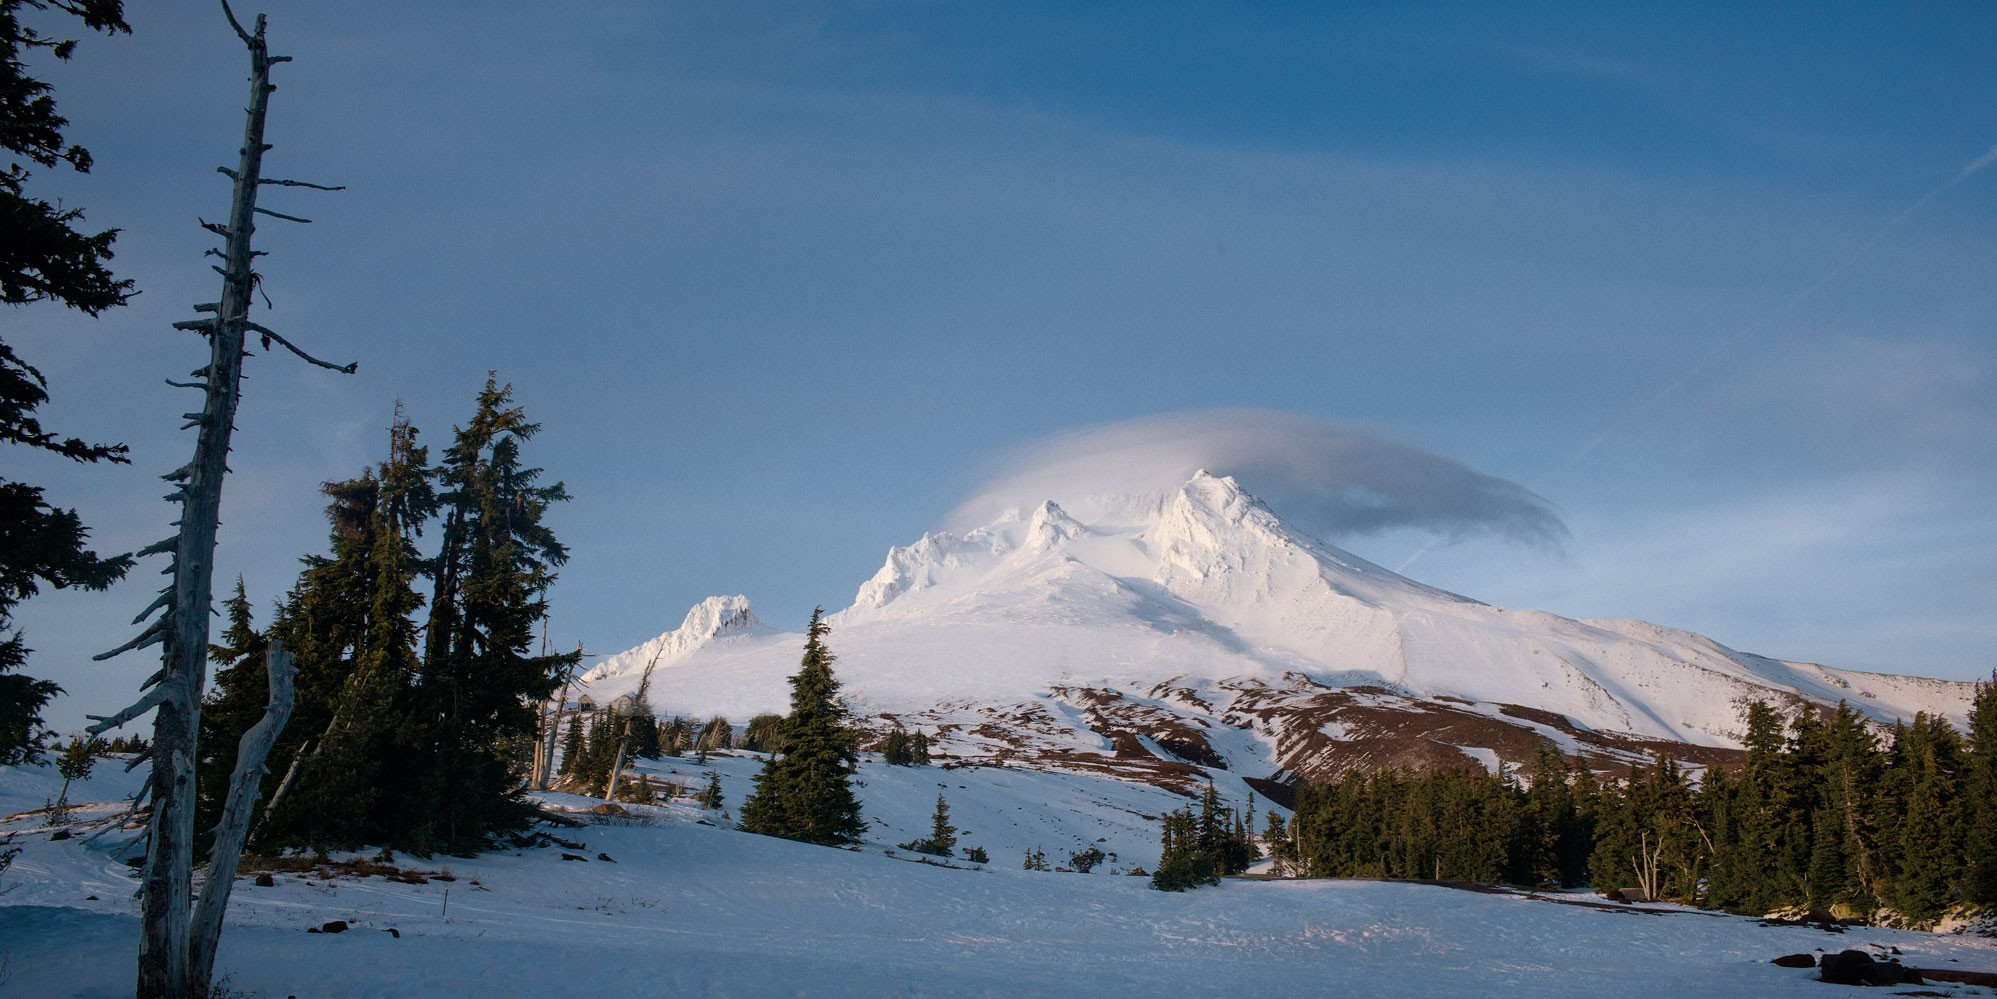 Mt. Hood's perpetually snowy peak by Chantal Anderson